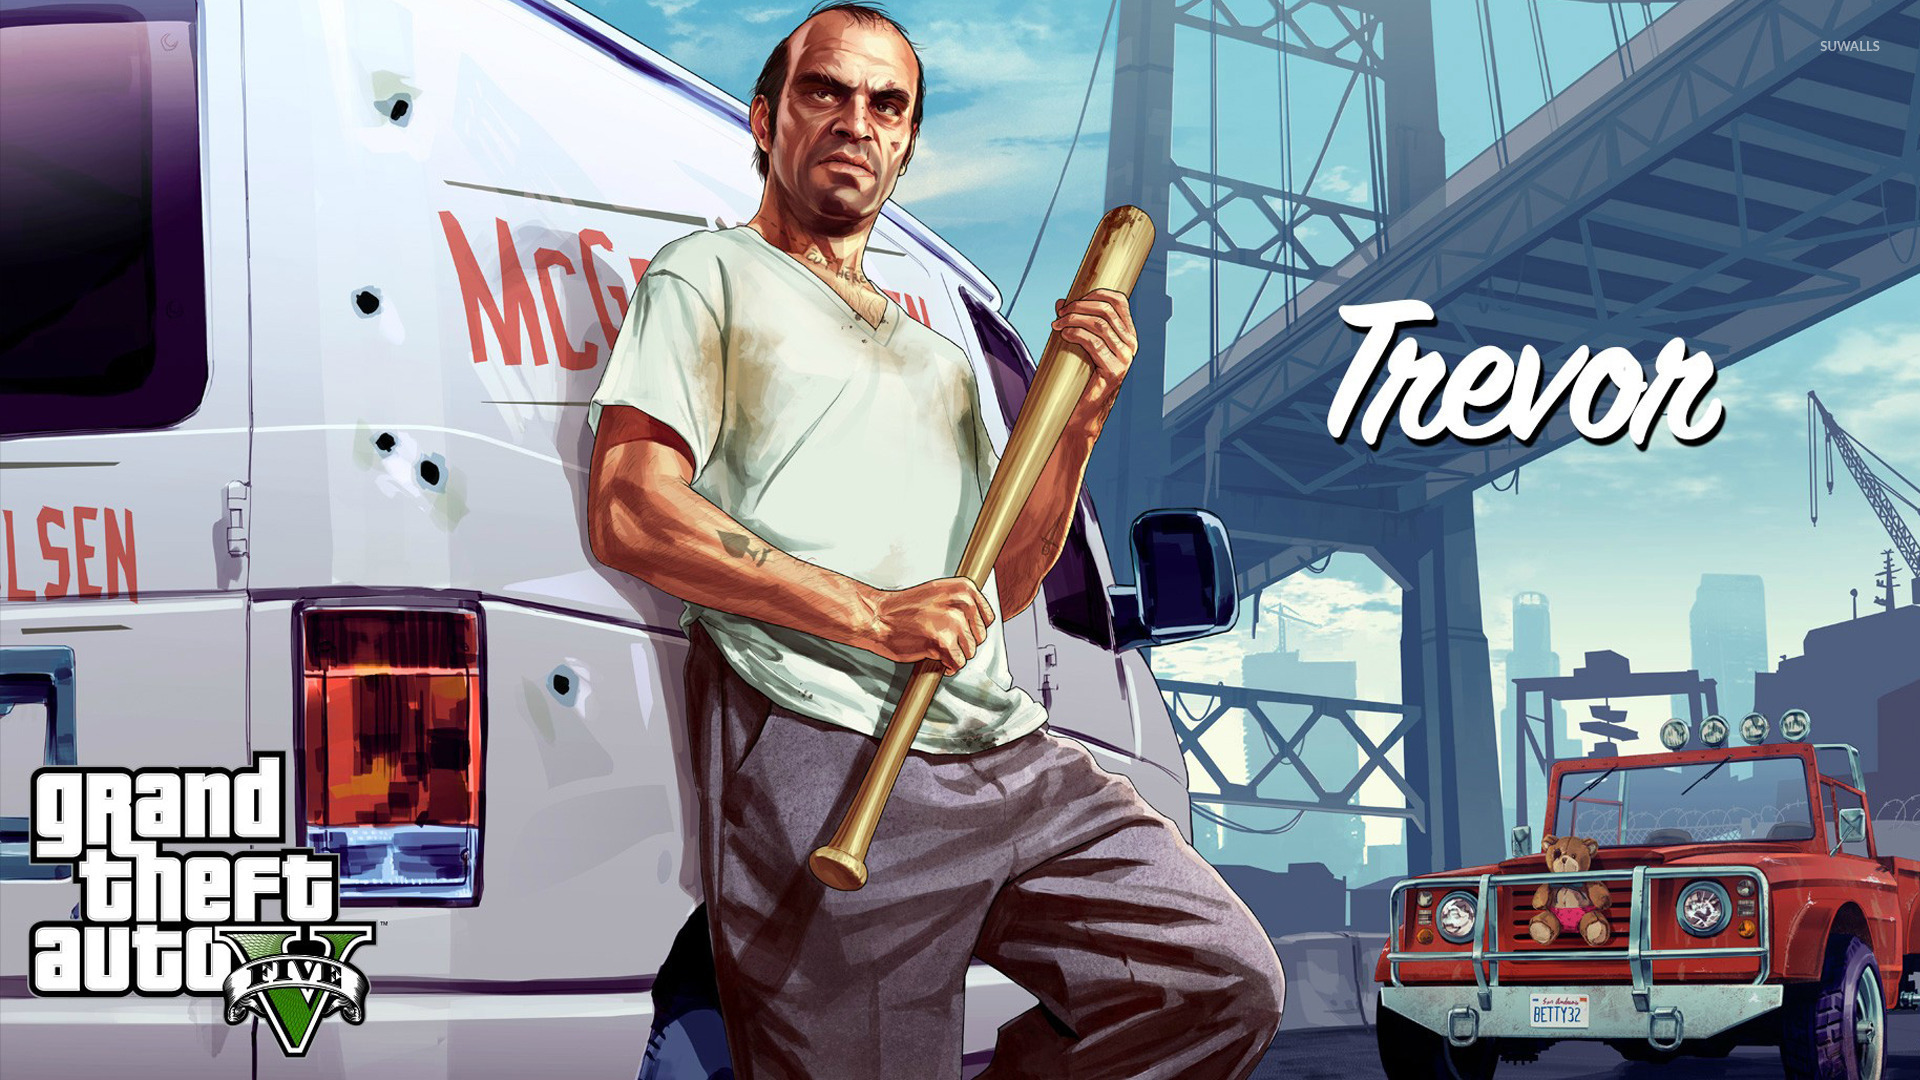 Trevor - Grand Theft Auto V wallpaper